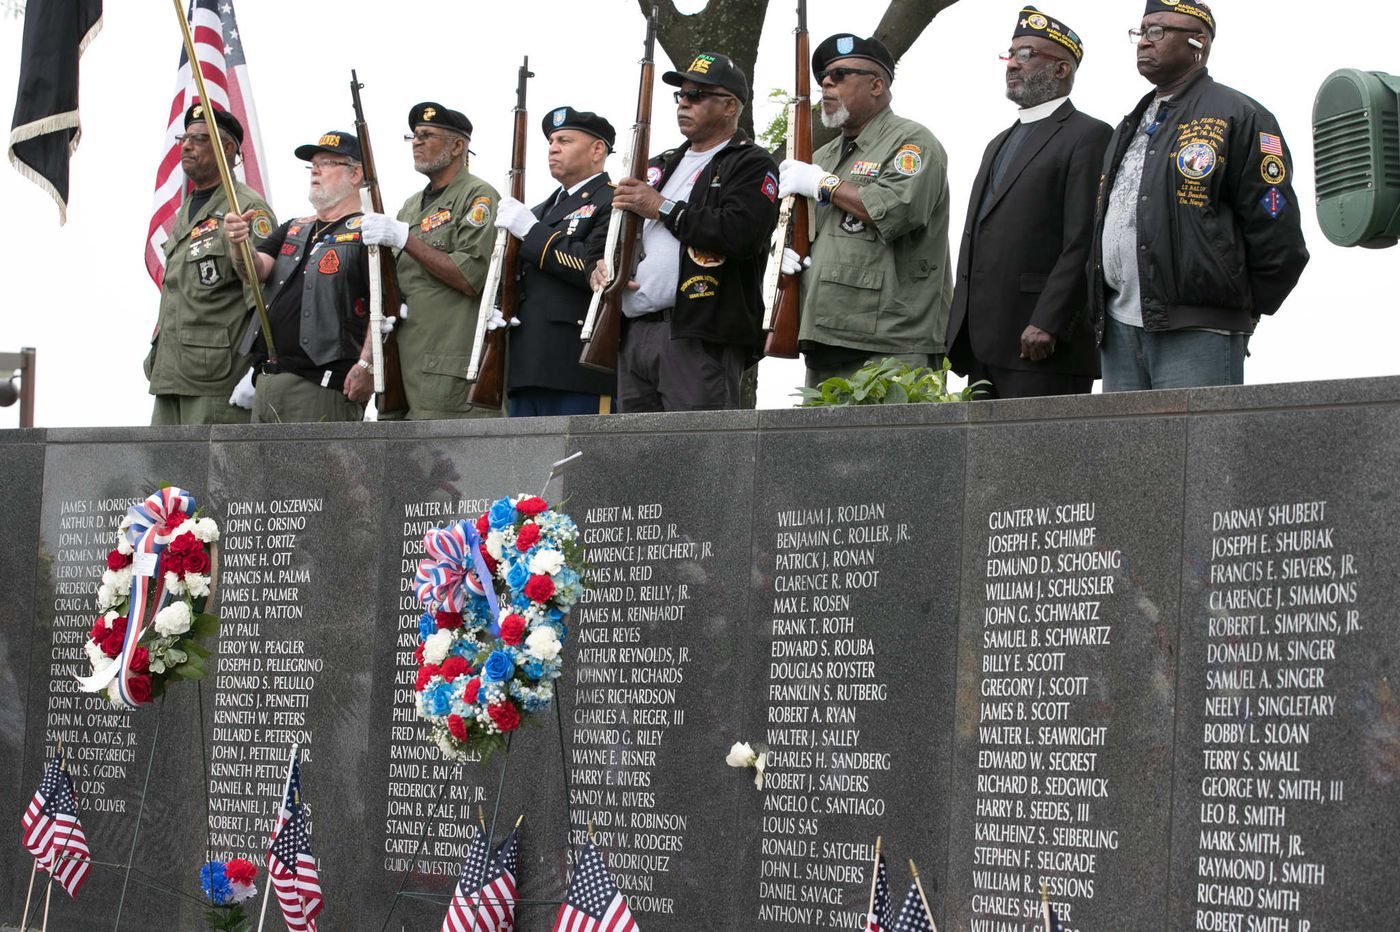 Memorial Day can be traumatic for veterans | Opinion